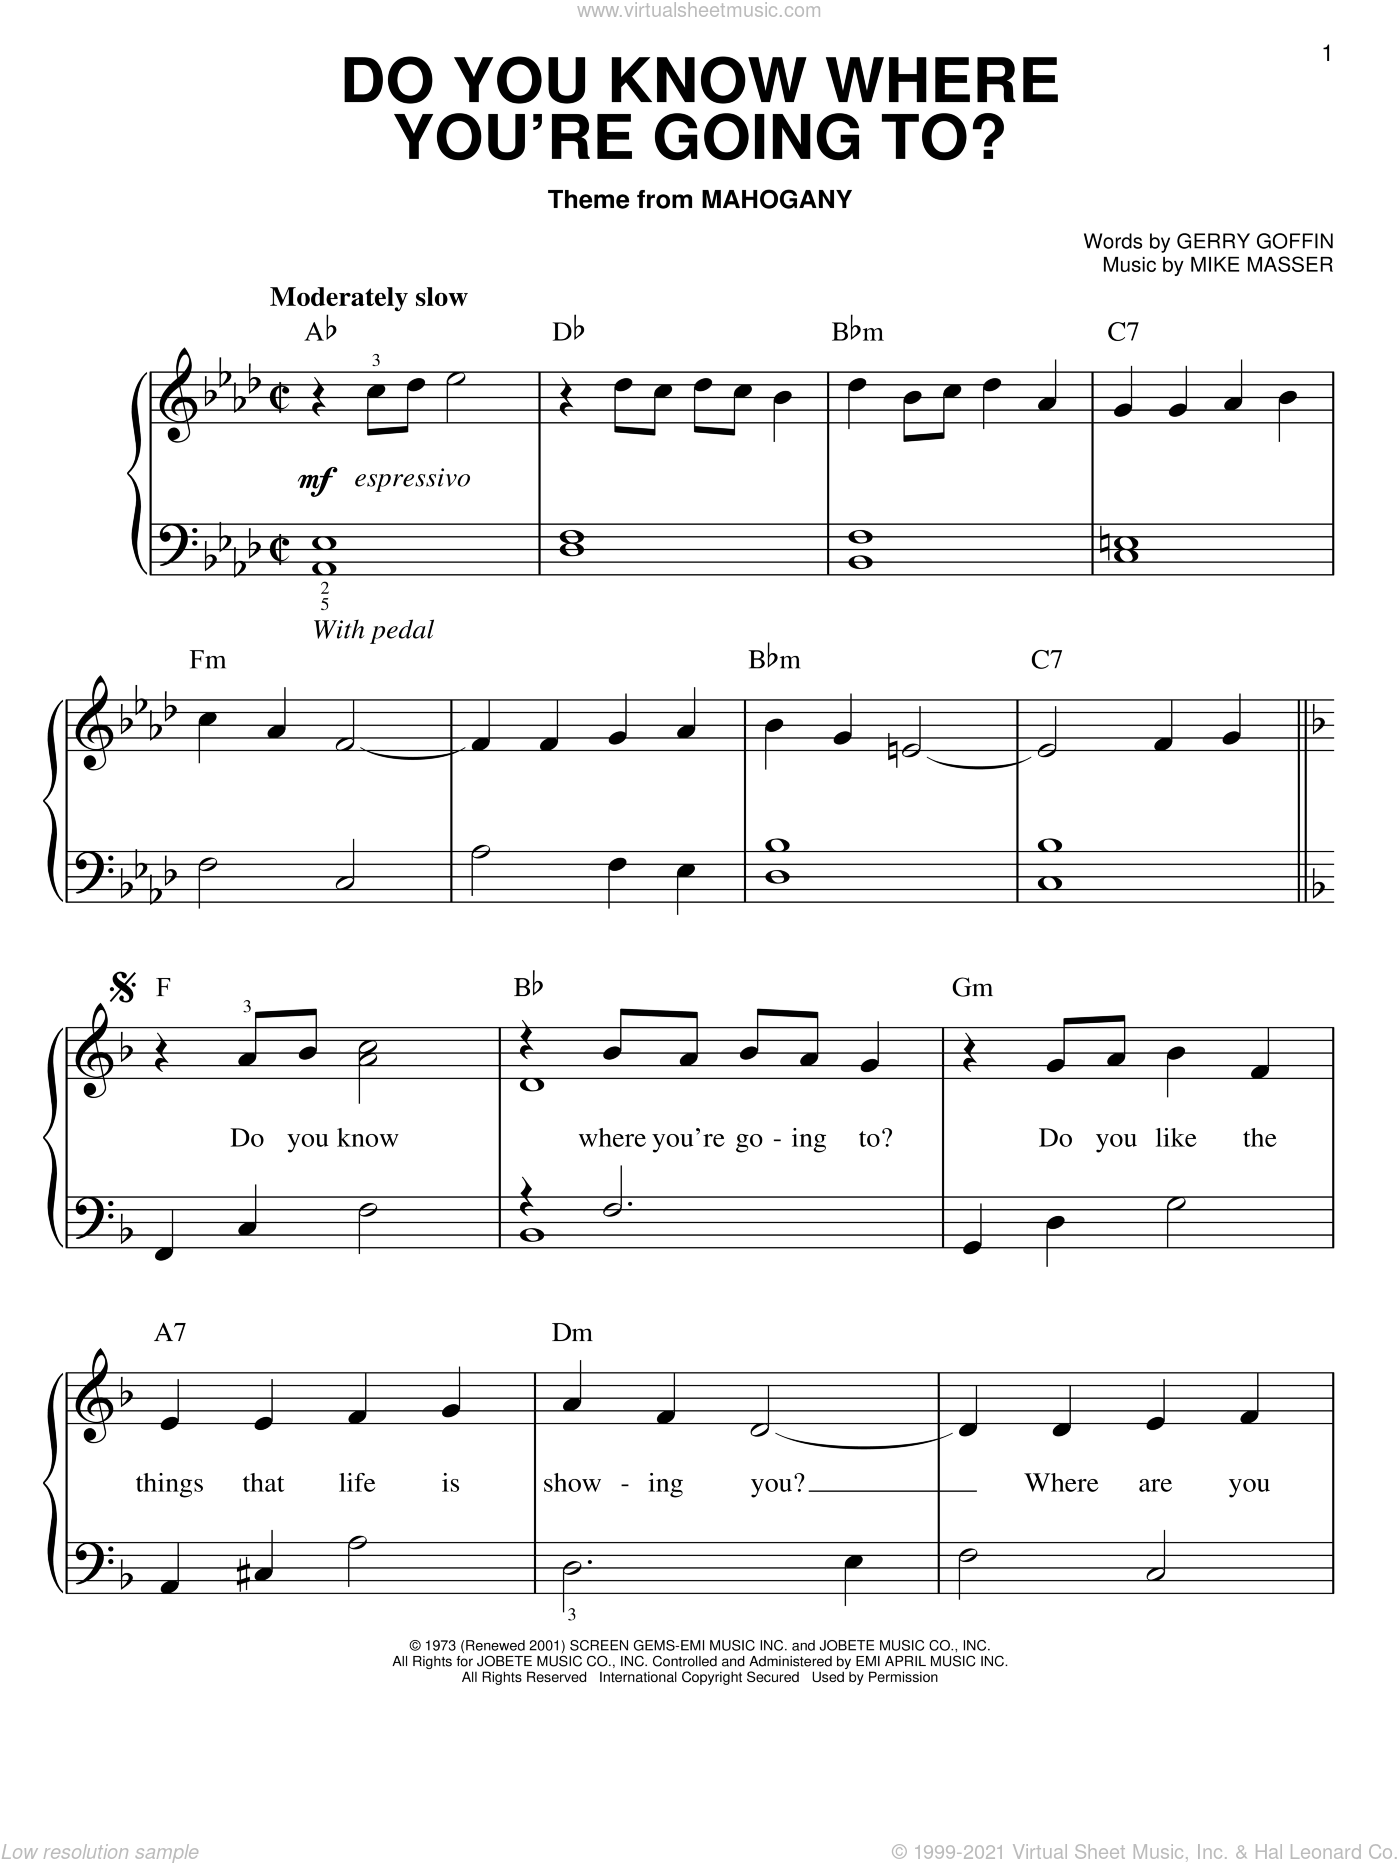 Do You Know Where You're Going To? sheet music for piano solo by Michael Masser, Diana Ross and Gerry Goffin. Score Image Preview.